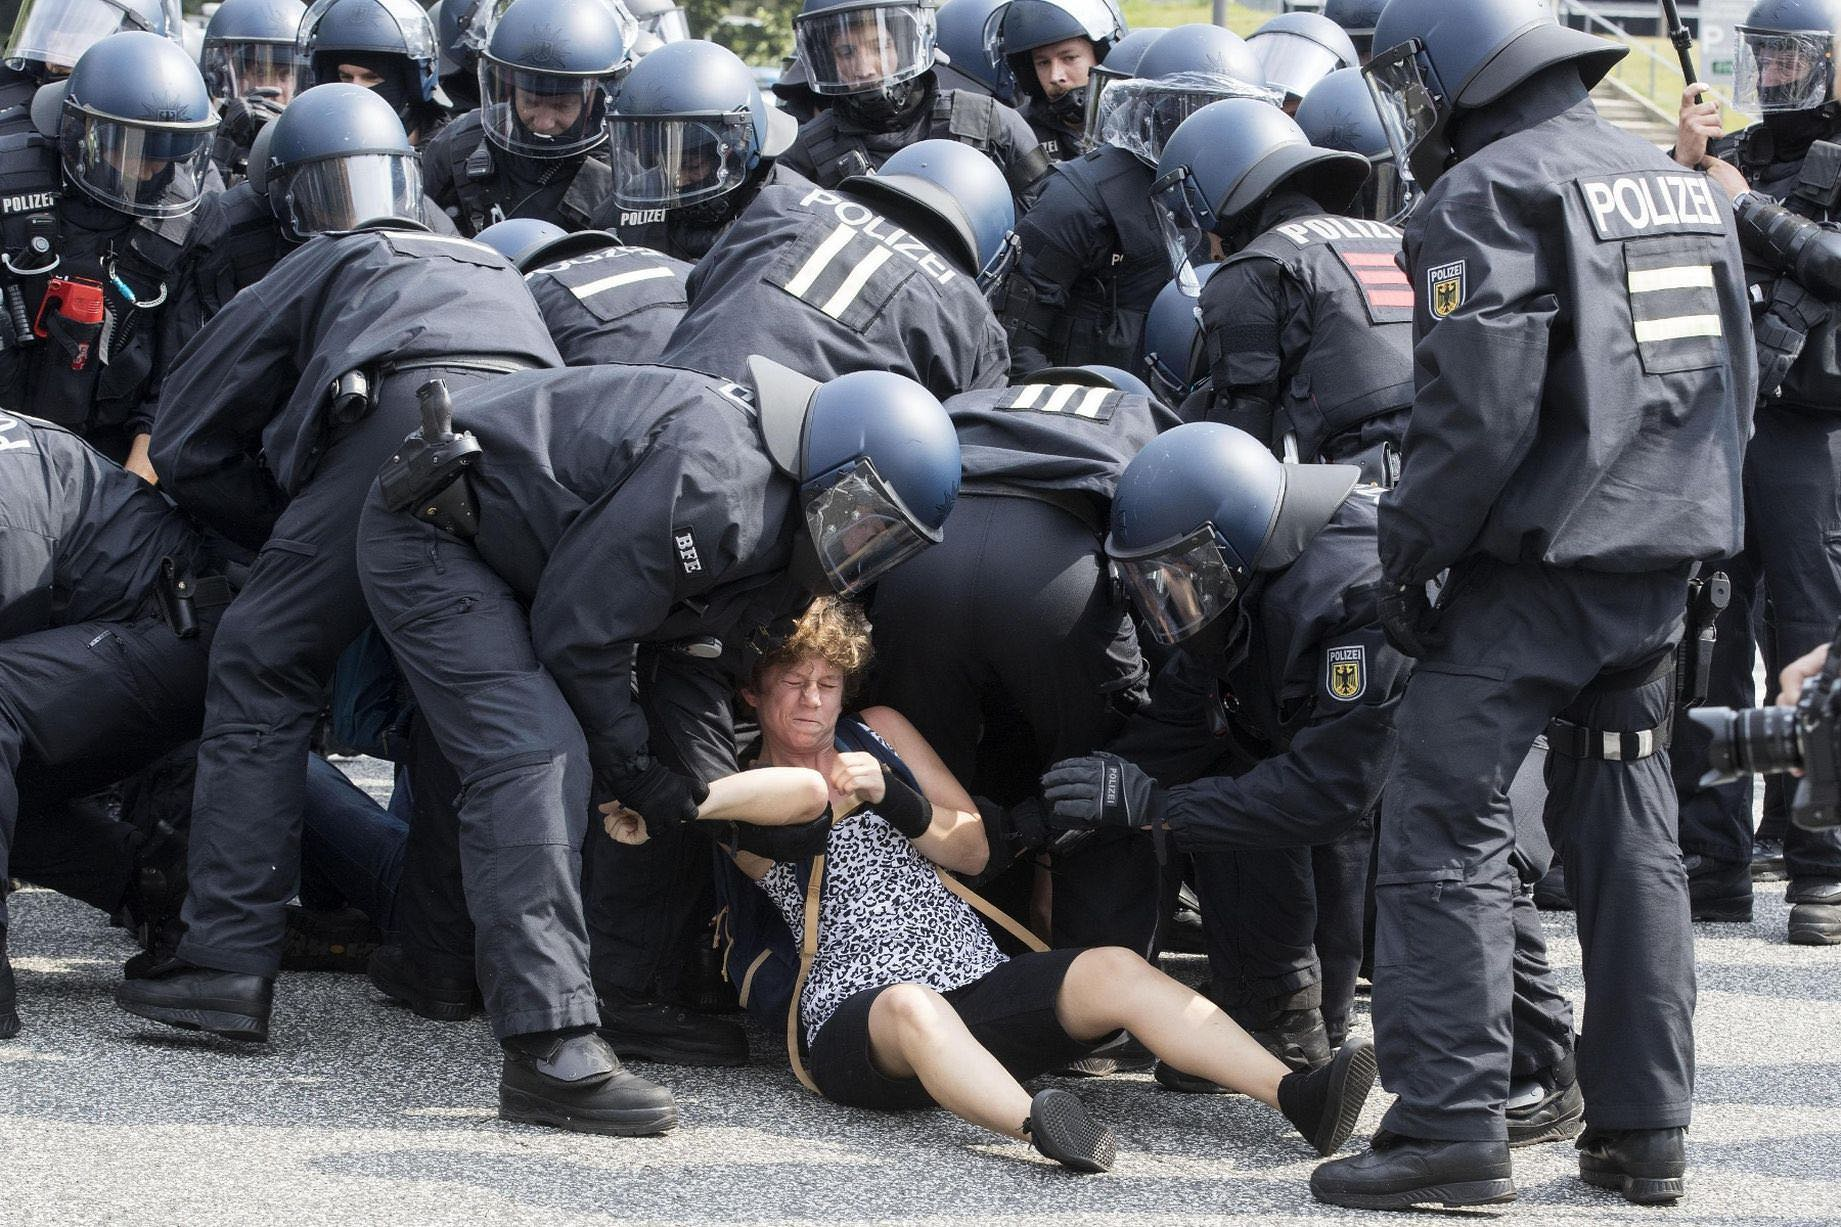 G20 solidarity with the police